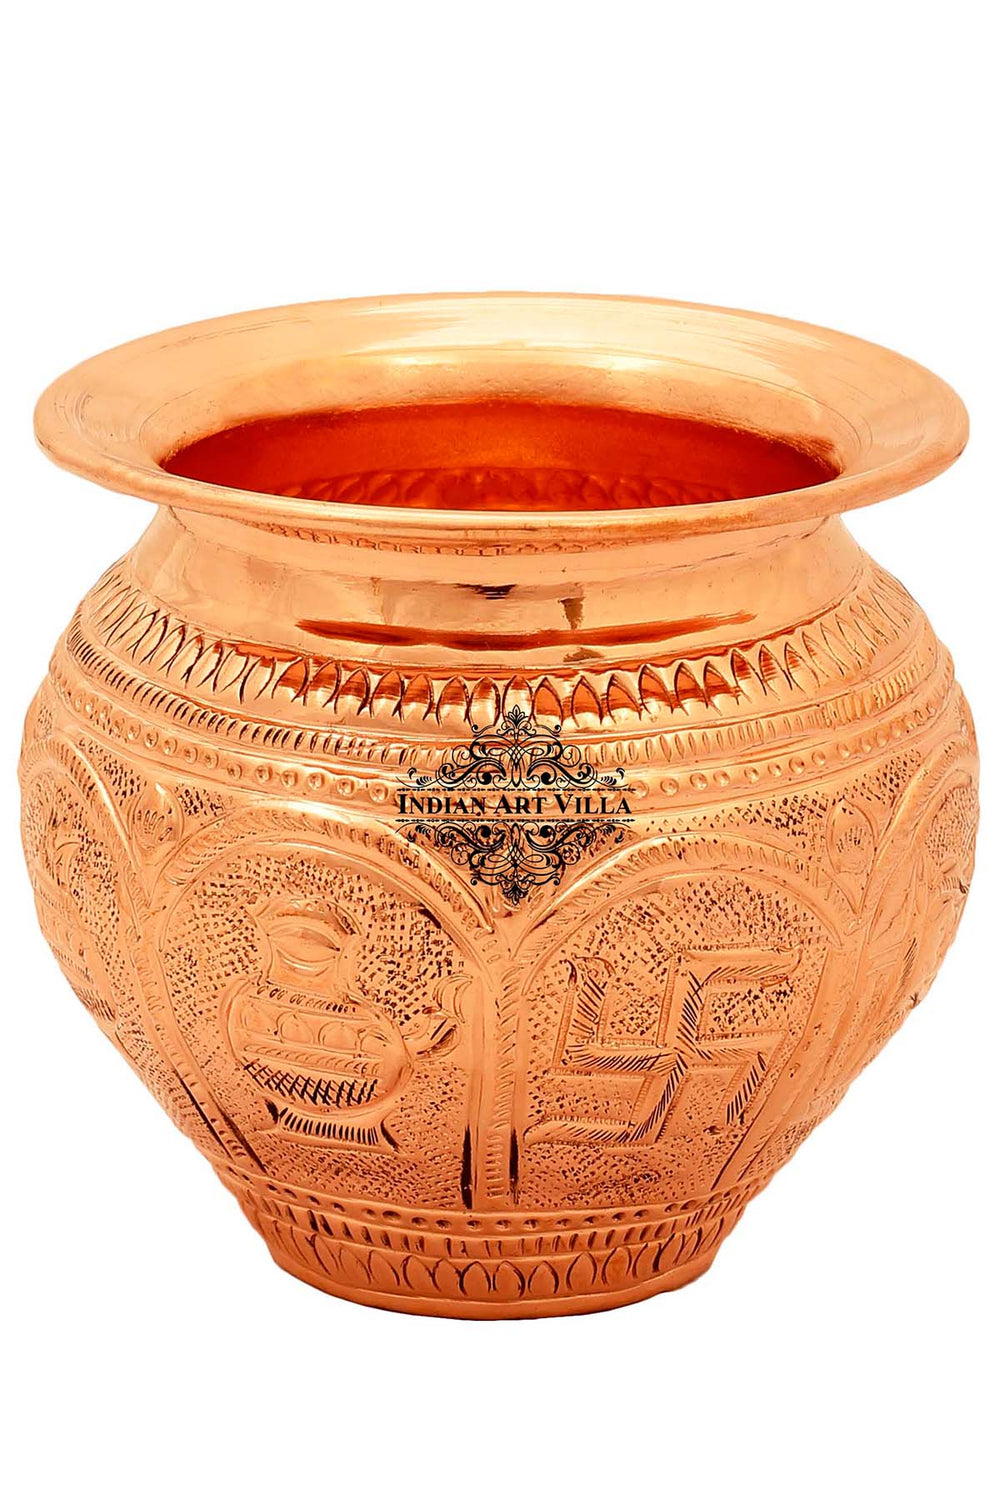 Copper Swastik Design Lota Kalash Pot, Pooja Temple Home Office, 21 oz